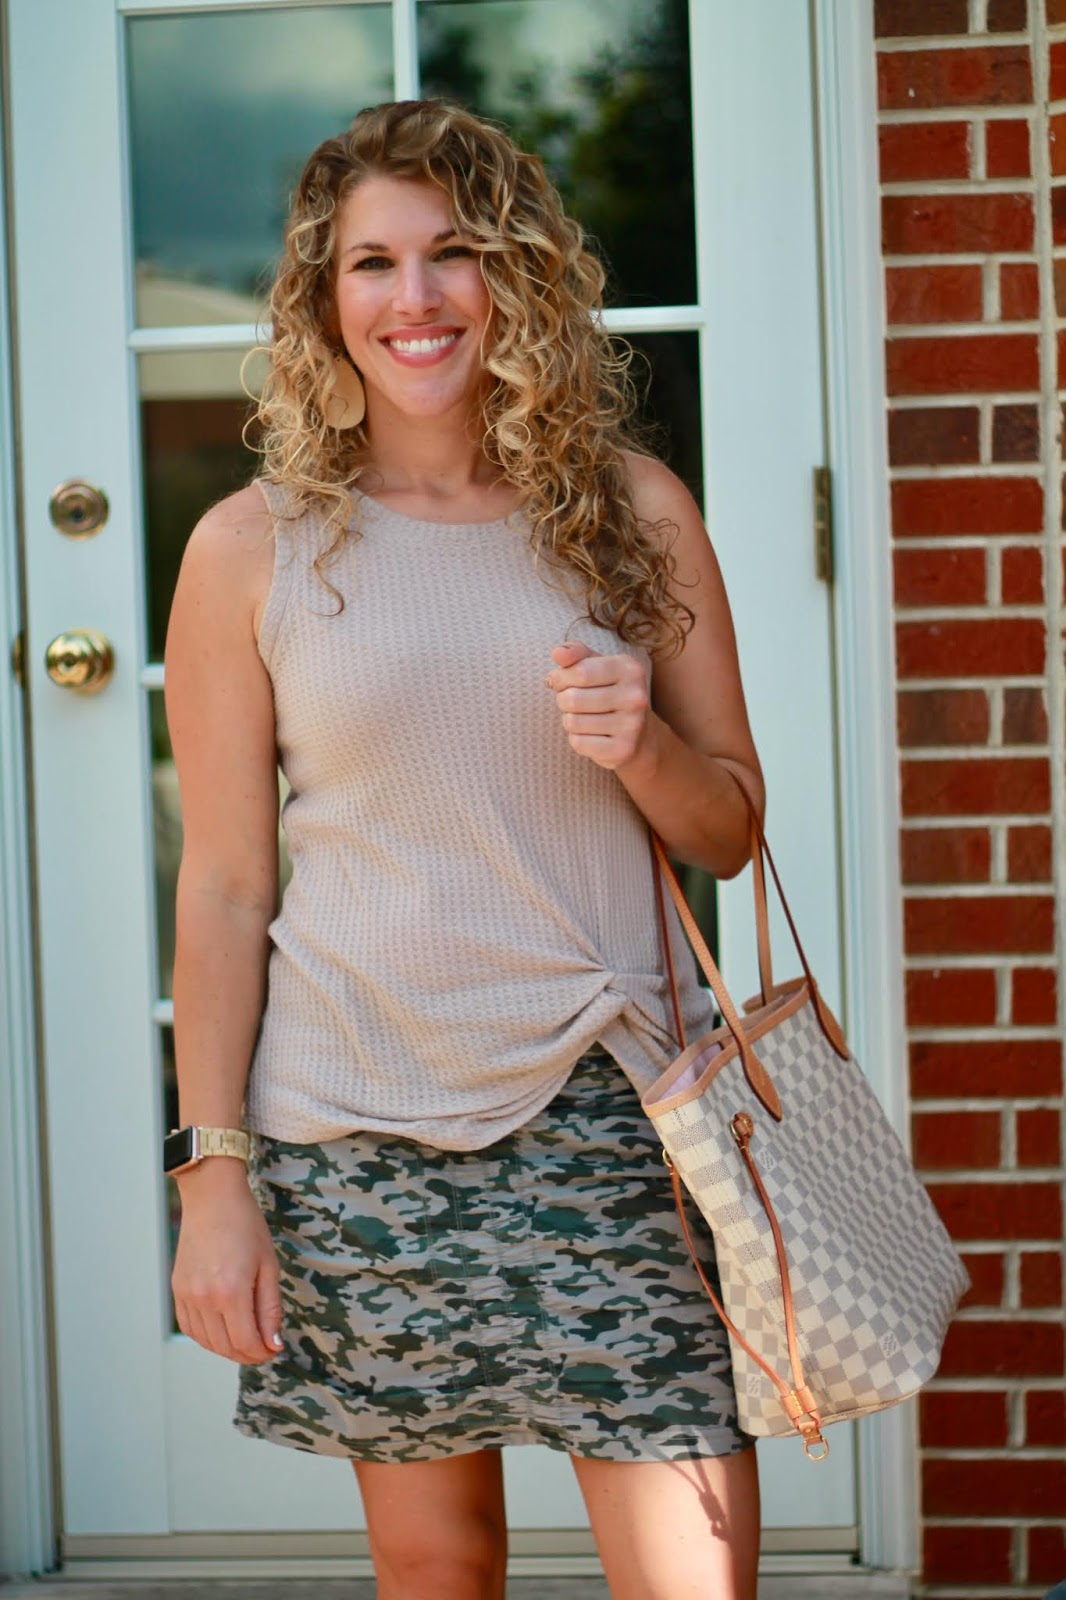 camo skirt, steve madden travel sandals, LV Neverfull, beige twist front top